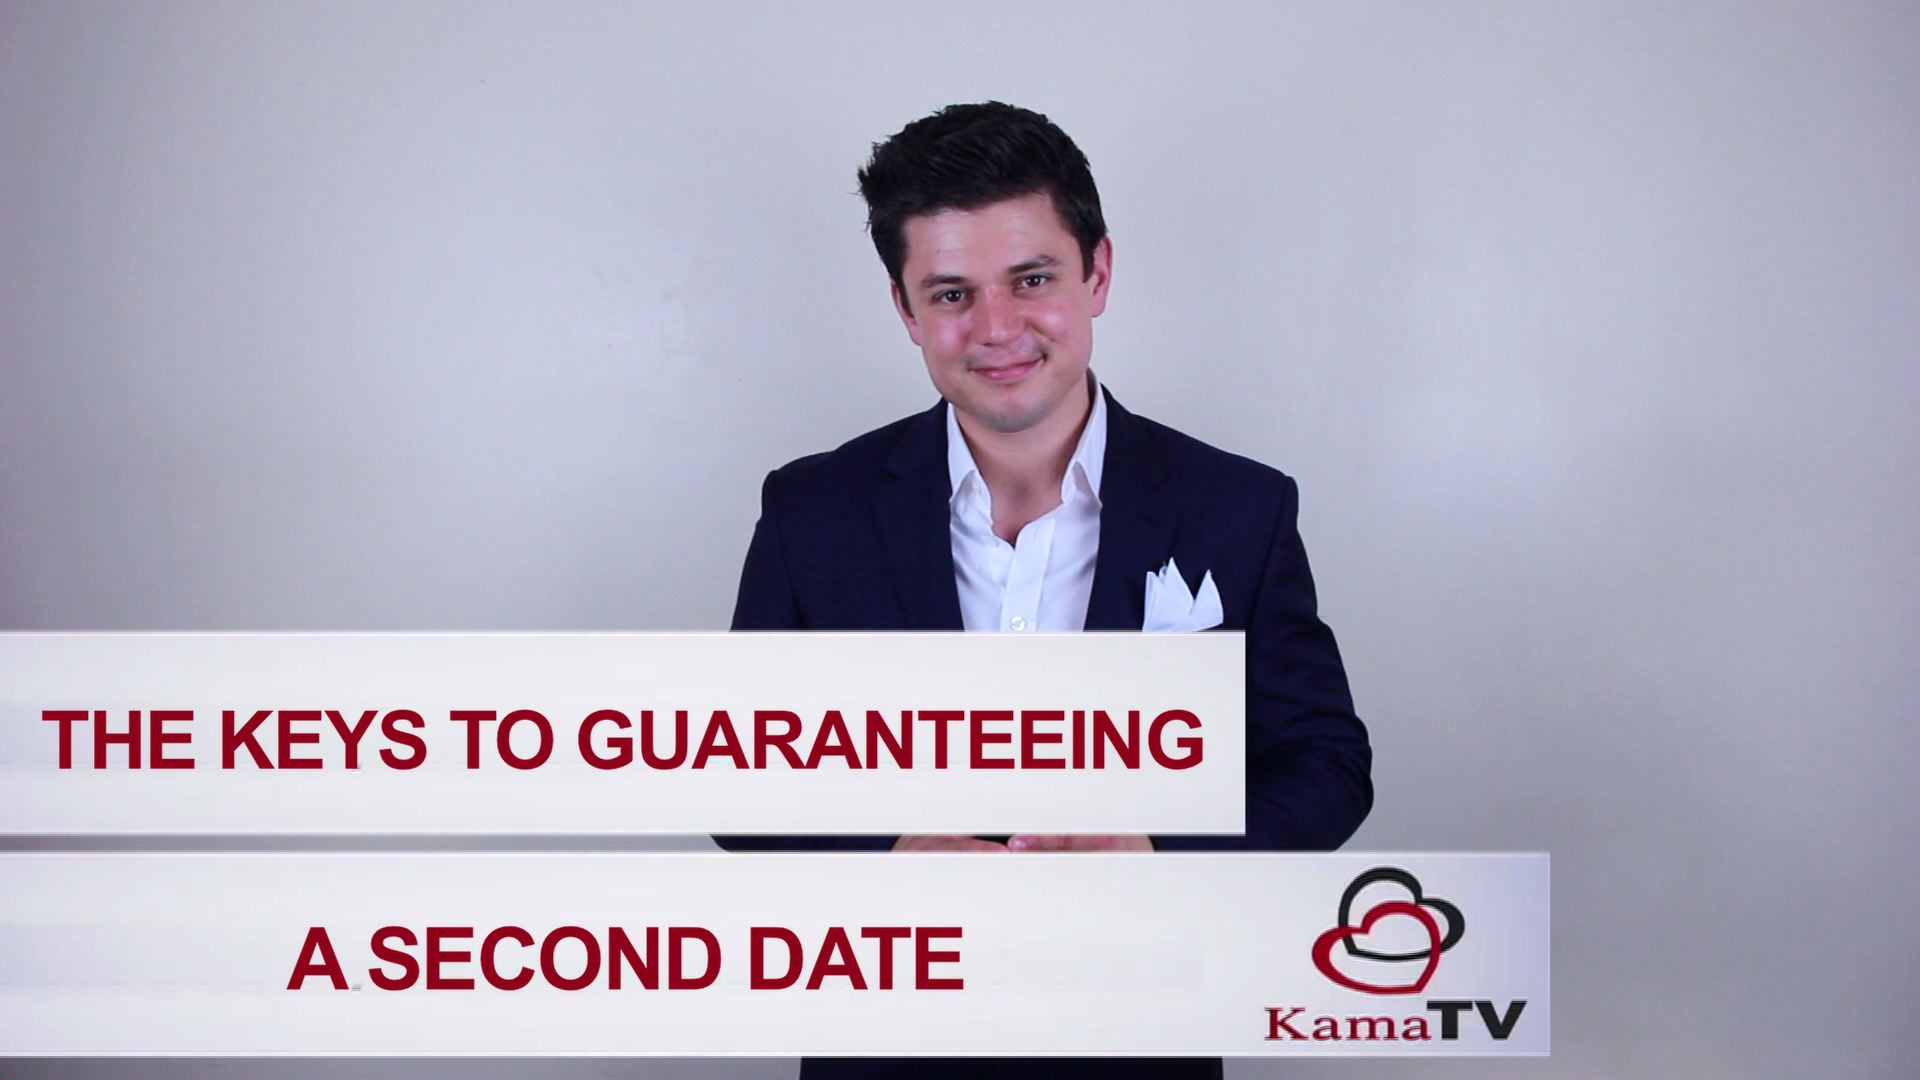 Dating Tips For Men: 11 Tips To Make Your Second Date